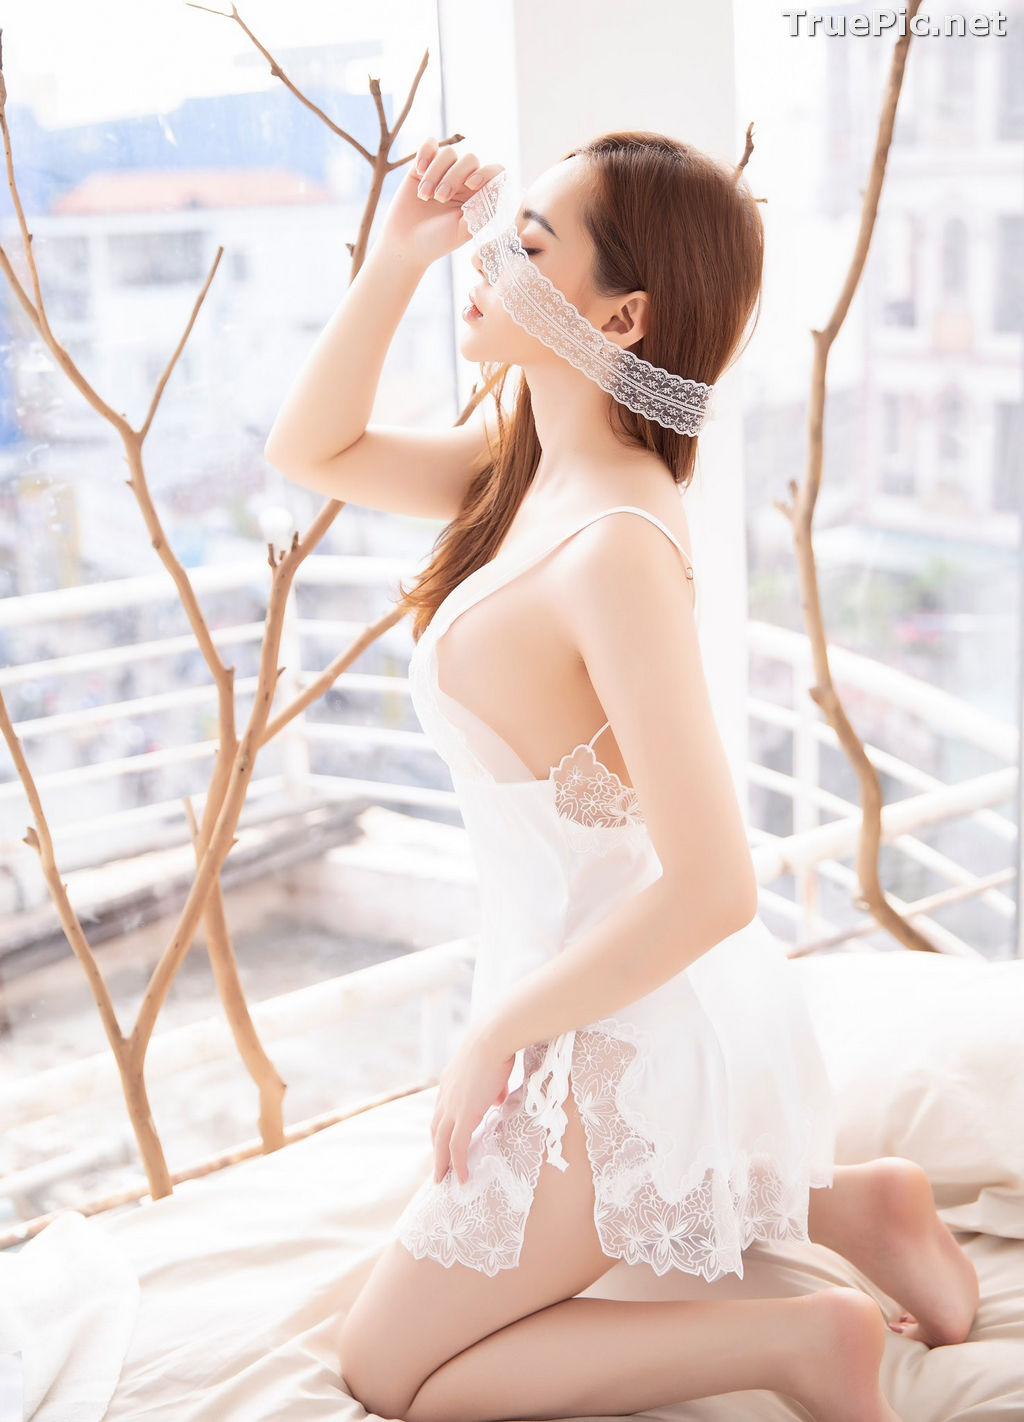 Image Vietnamese Model – Hot Beautiful Girls In White Collection #2 - TruePic.net - Picture-8